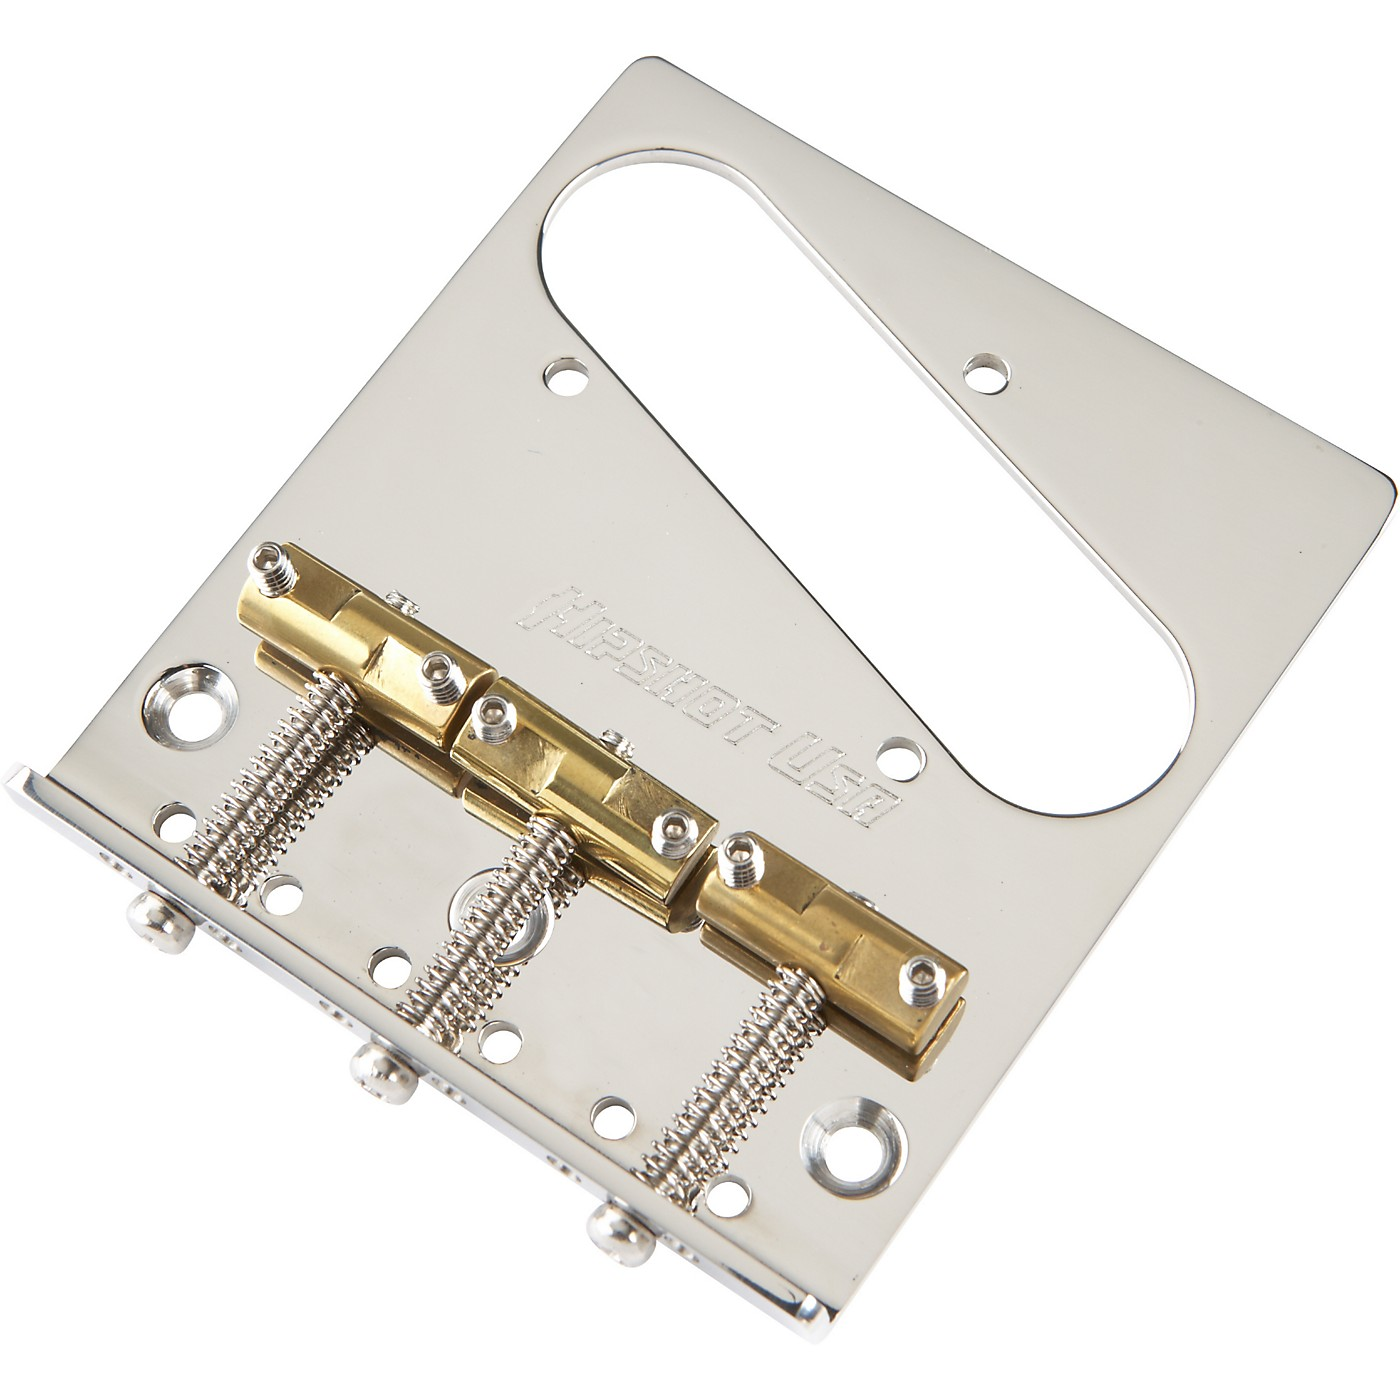 Hipshot Stainless Steel Tele Bridge 3 Hole Mount with Compensated Saddles thumbnail